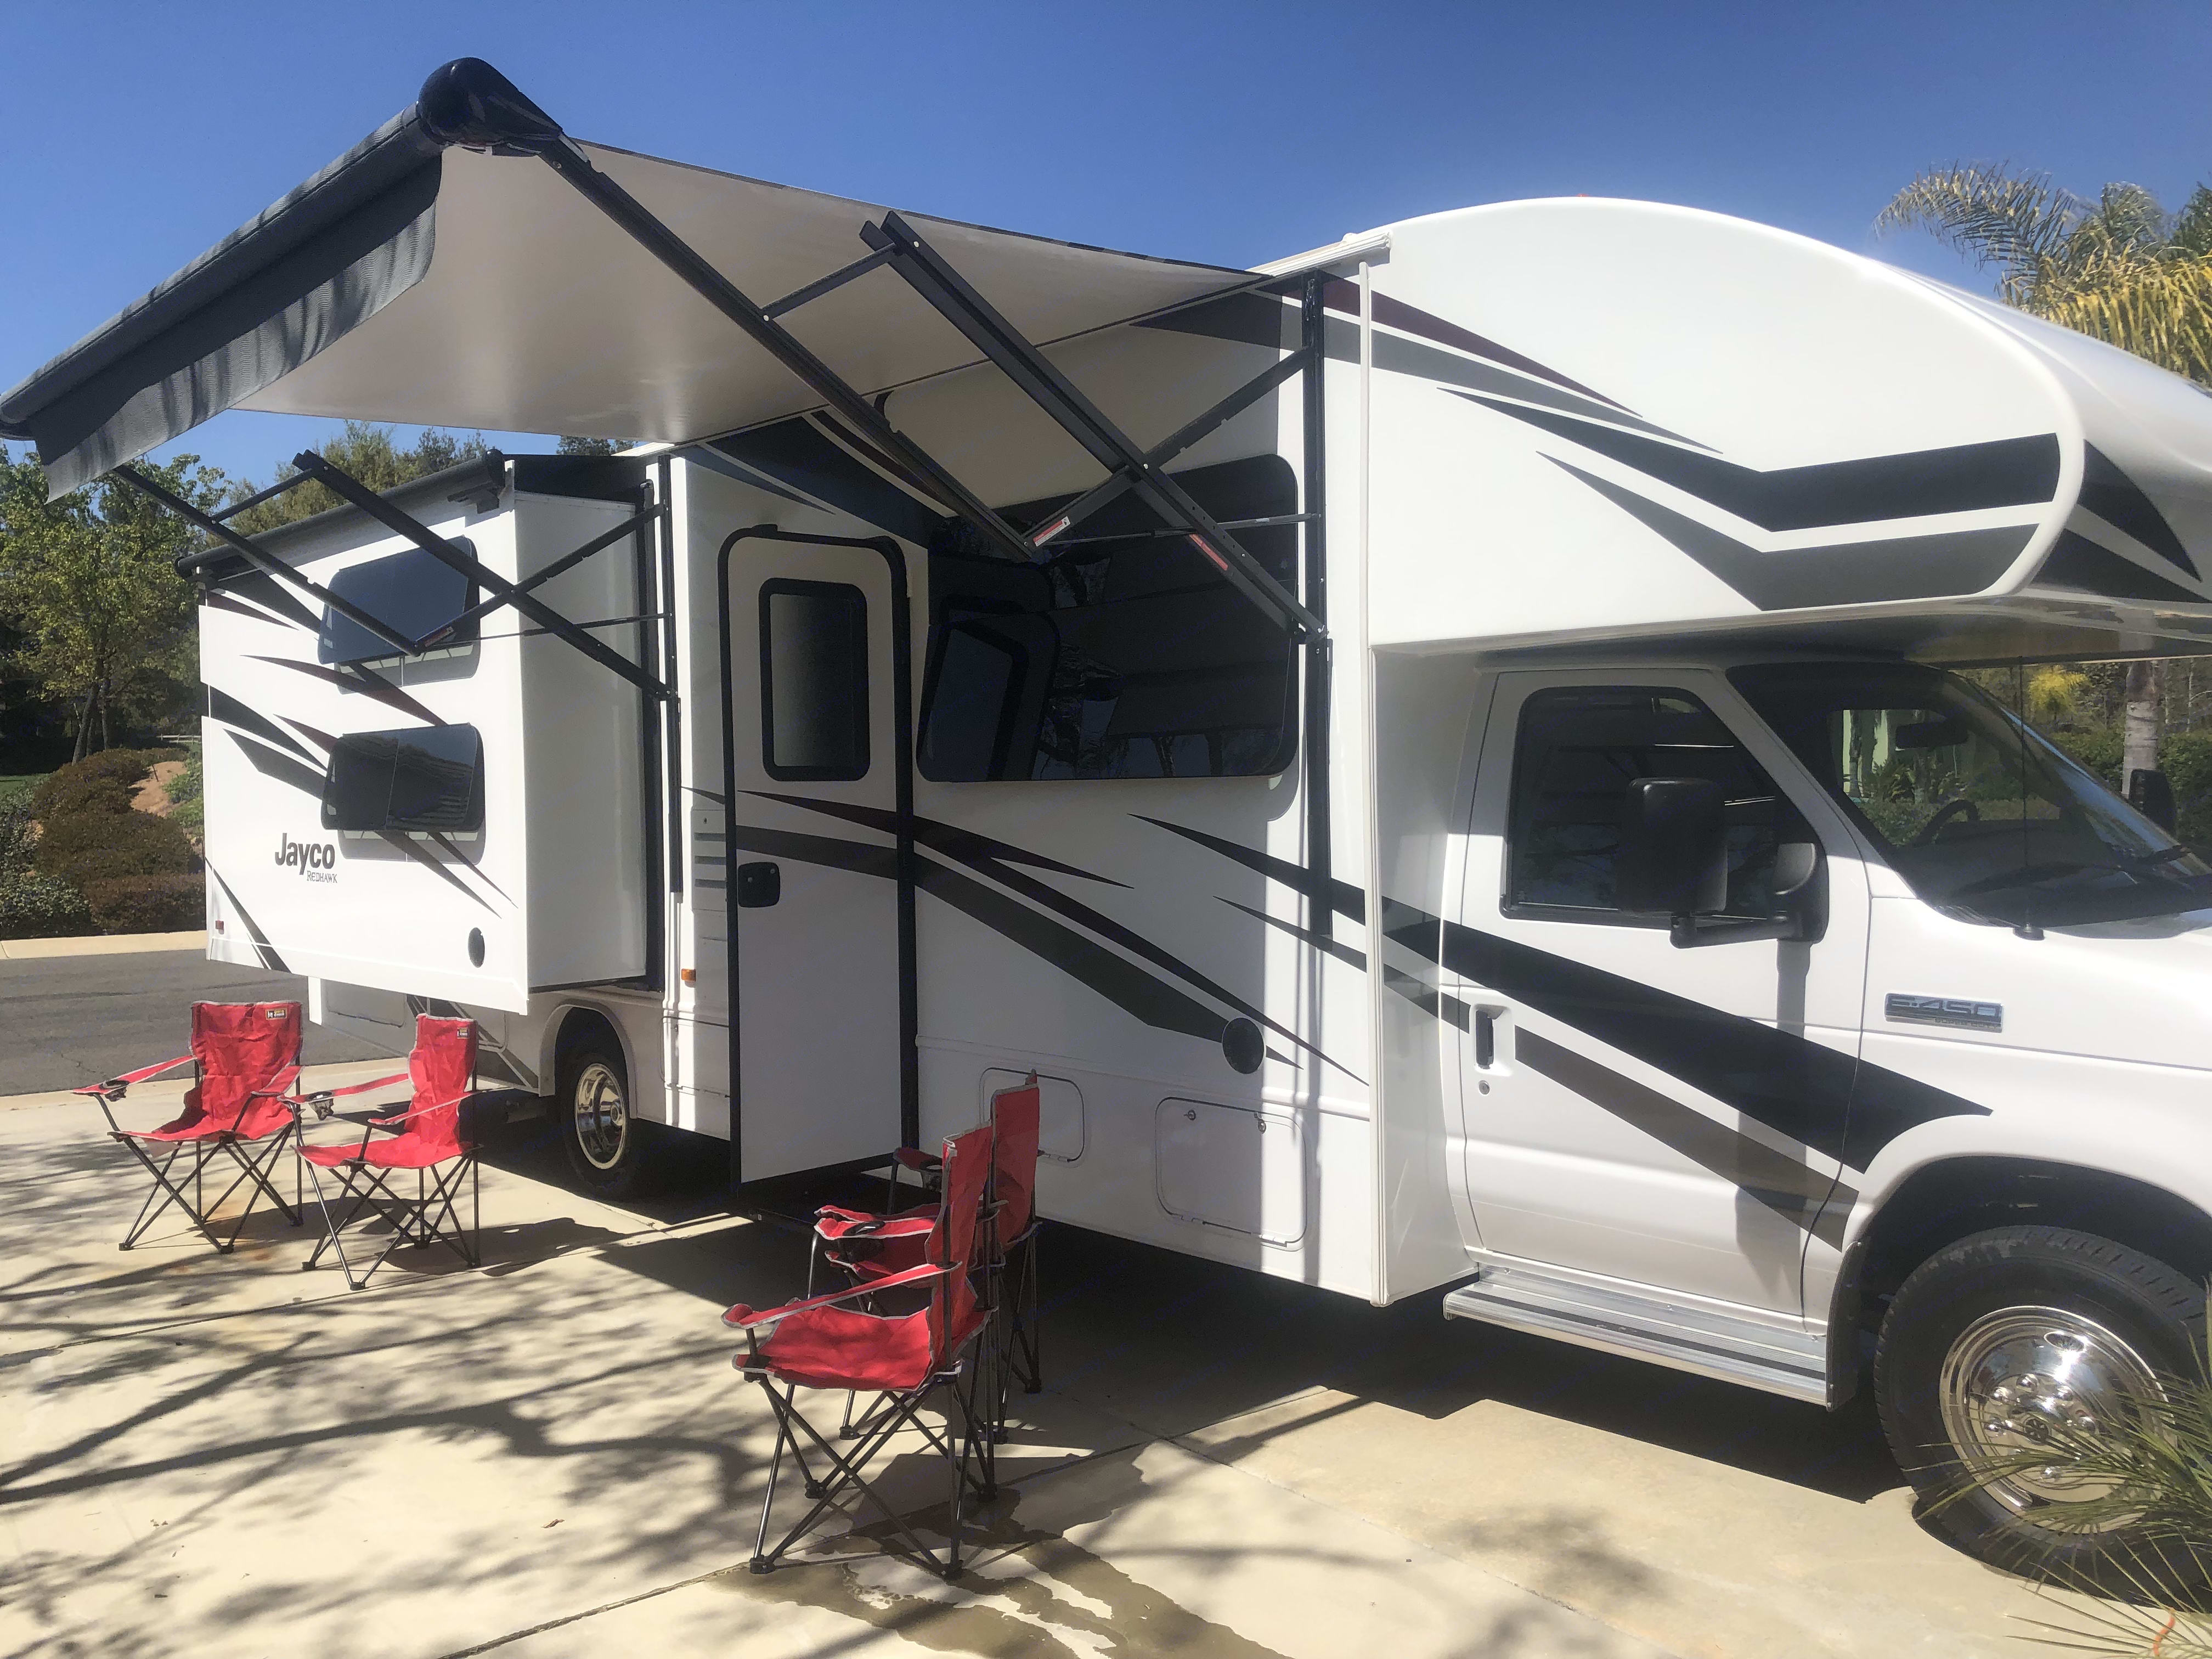 Brand new!!!!!  4 chairs for fun in the Sun👍🏻👍🏻. Jayco Redhawk 2019